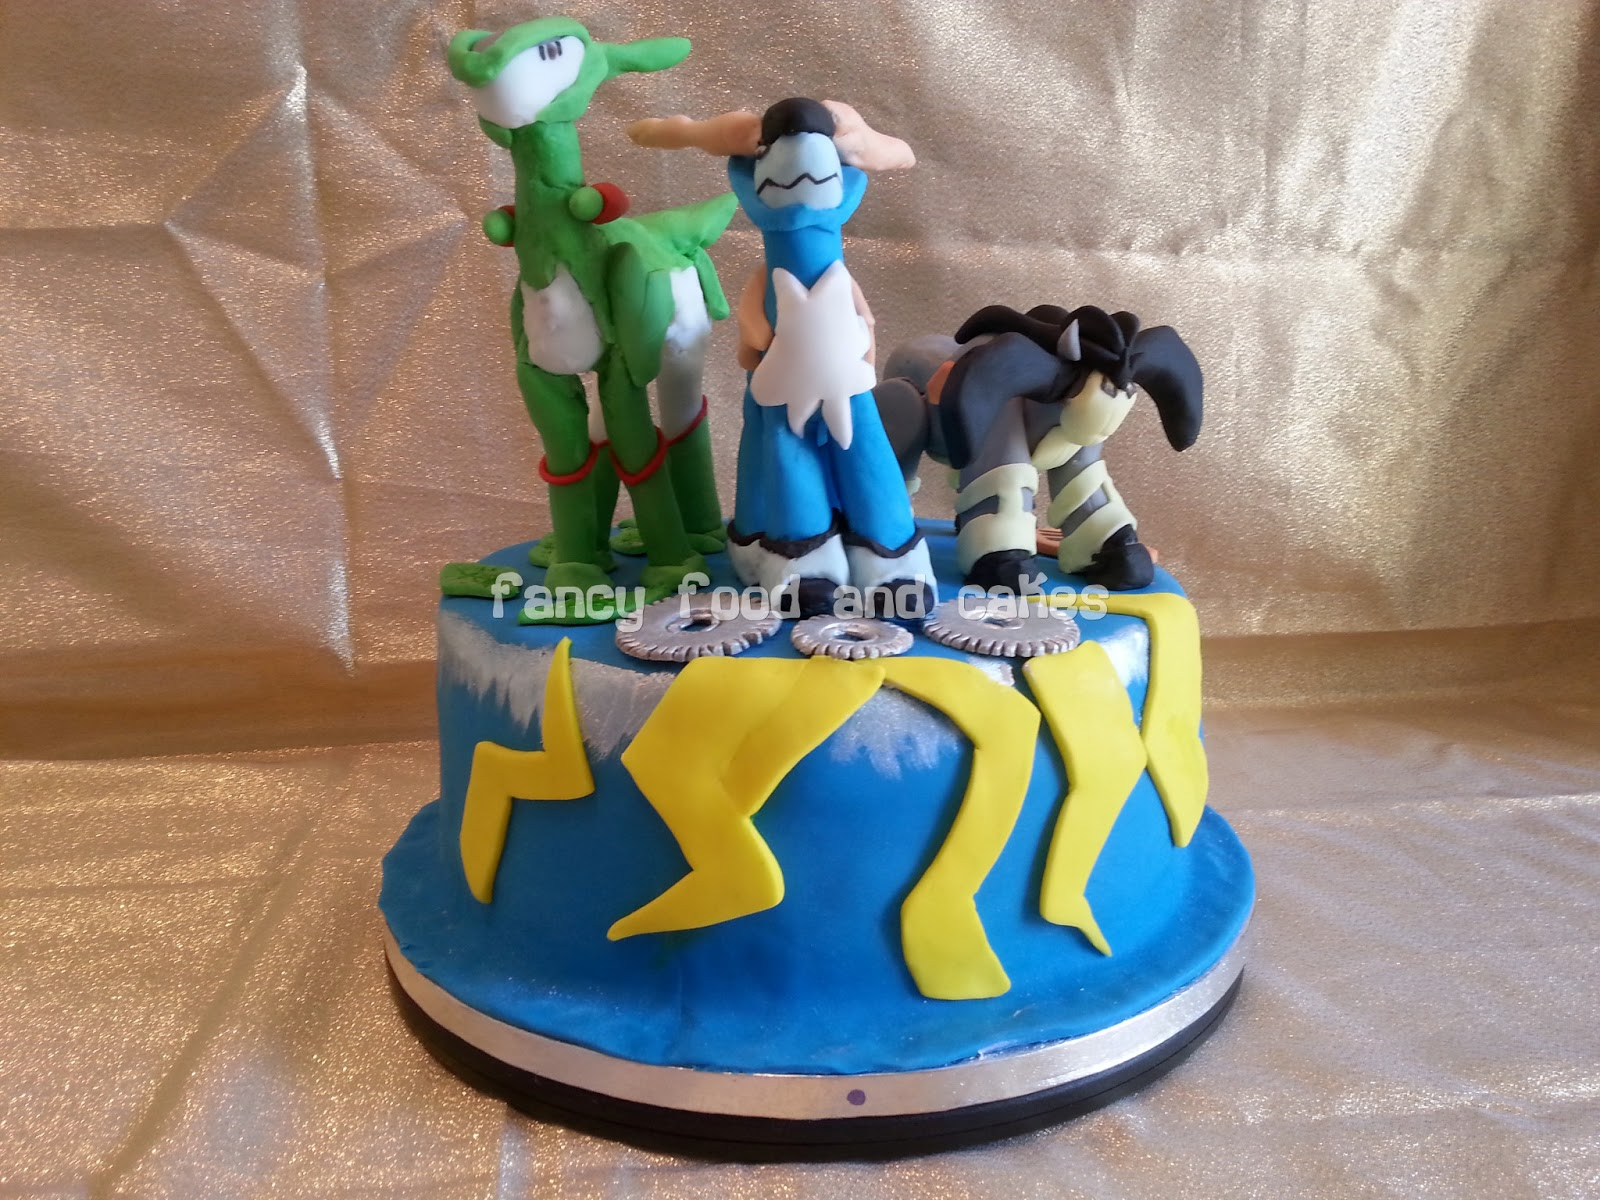 fancy food cakes torta pokemon solenni spadaccini pokemon cake swords of justice. Black Bedroom Furniture Sets. Home Design Ideas